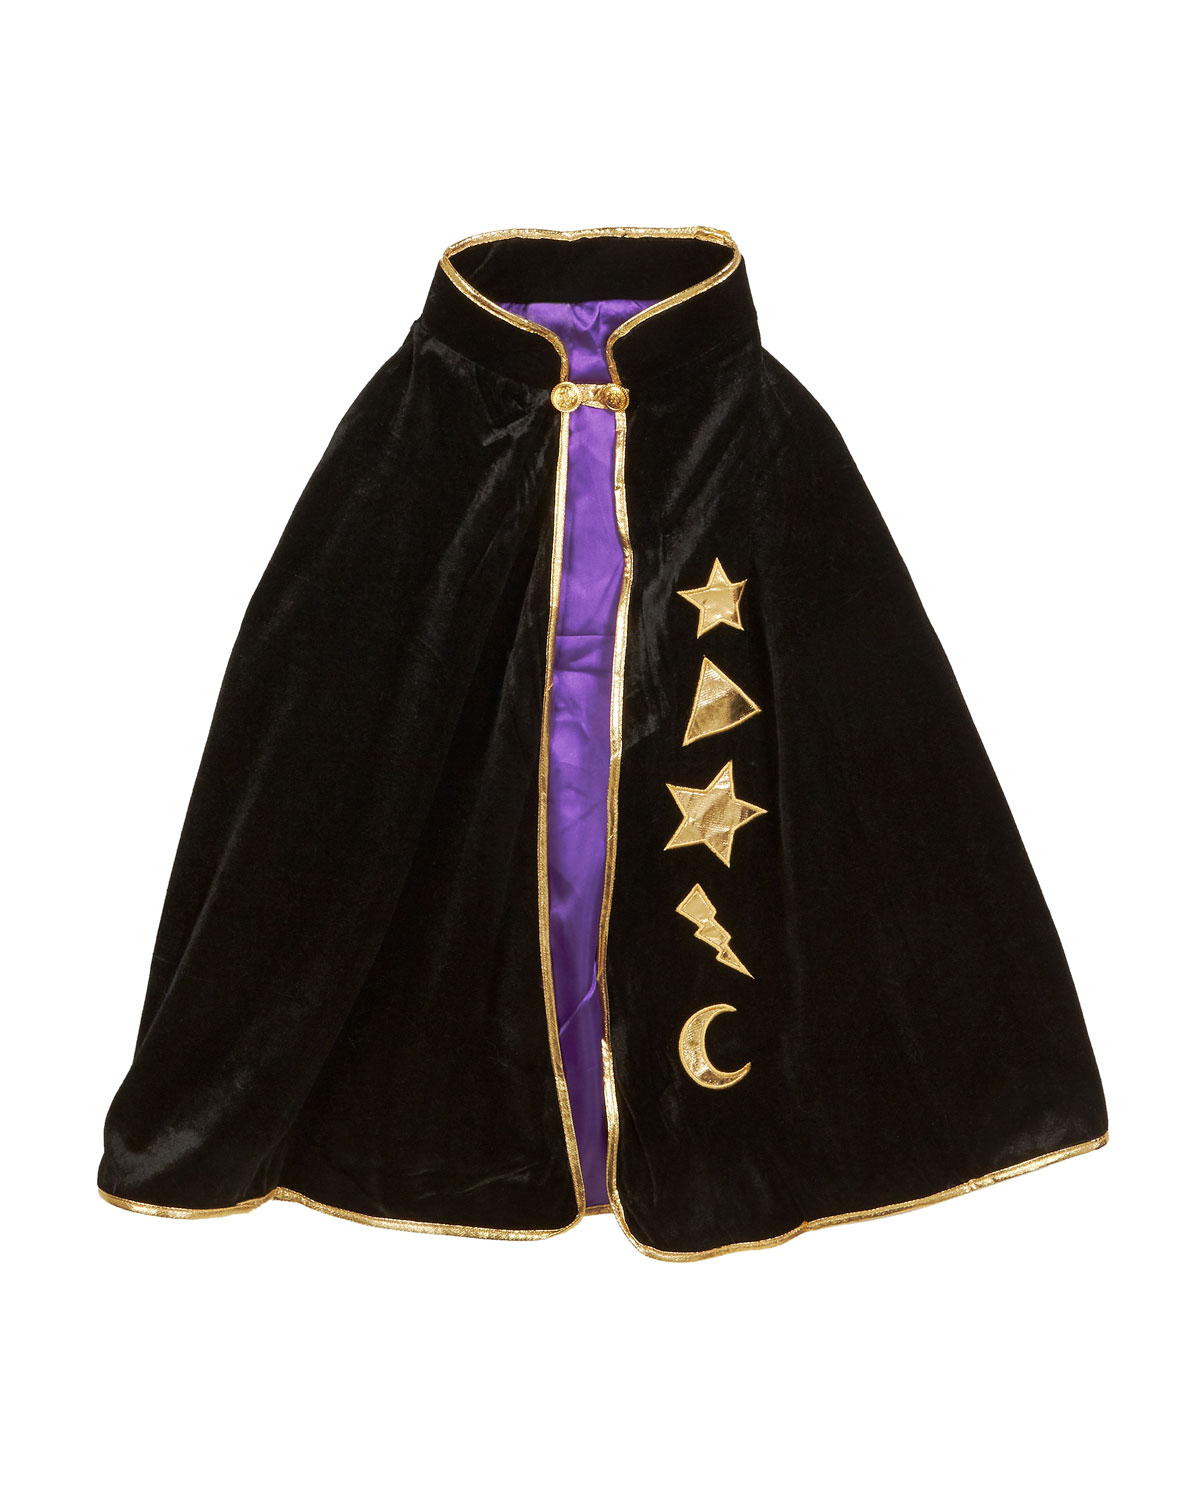 Kids Wizard Cape Costume 48 Years